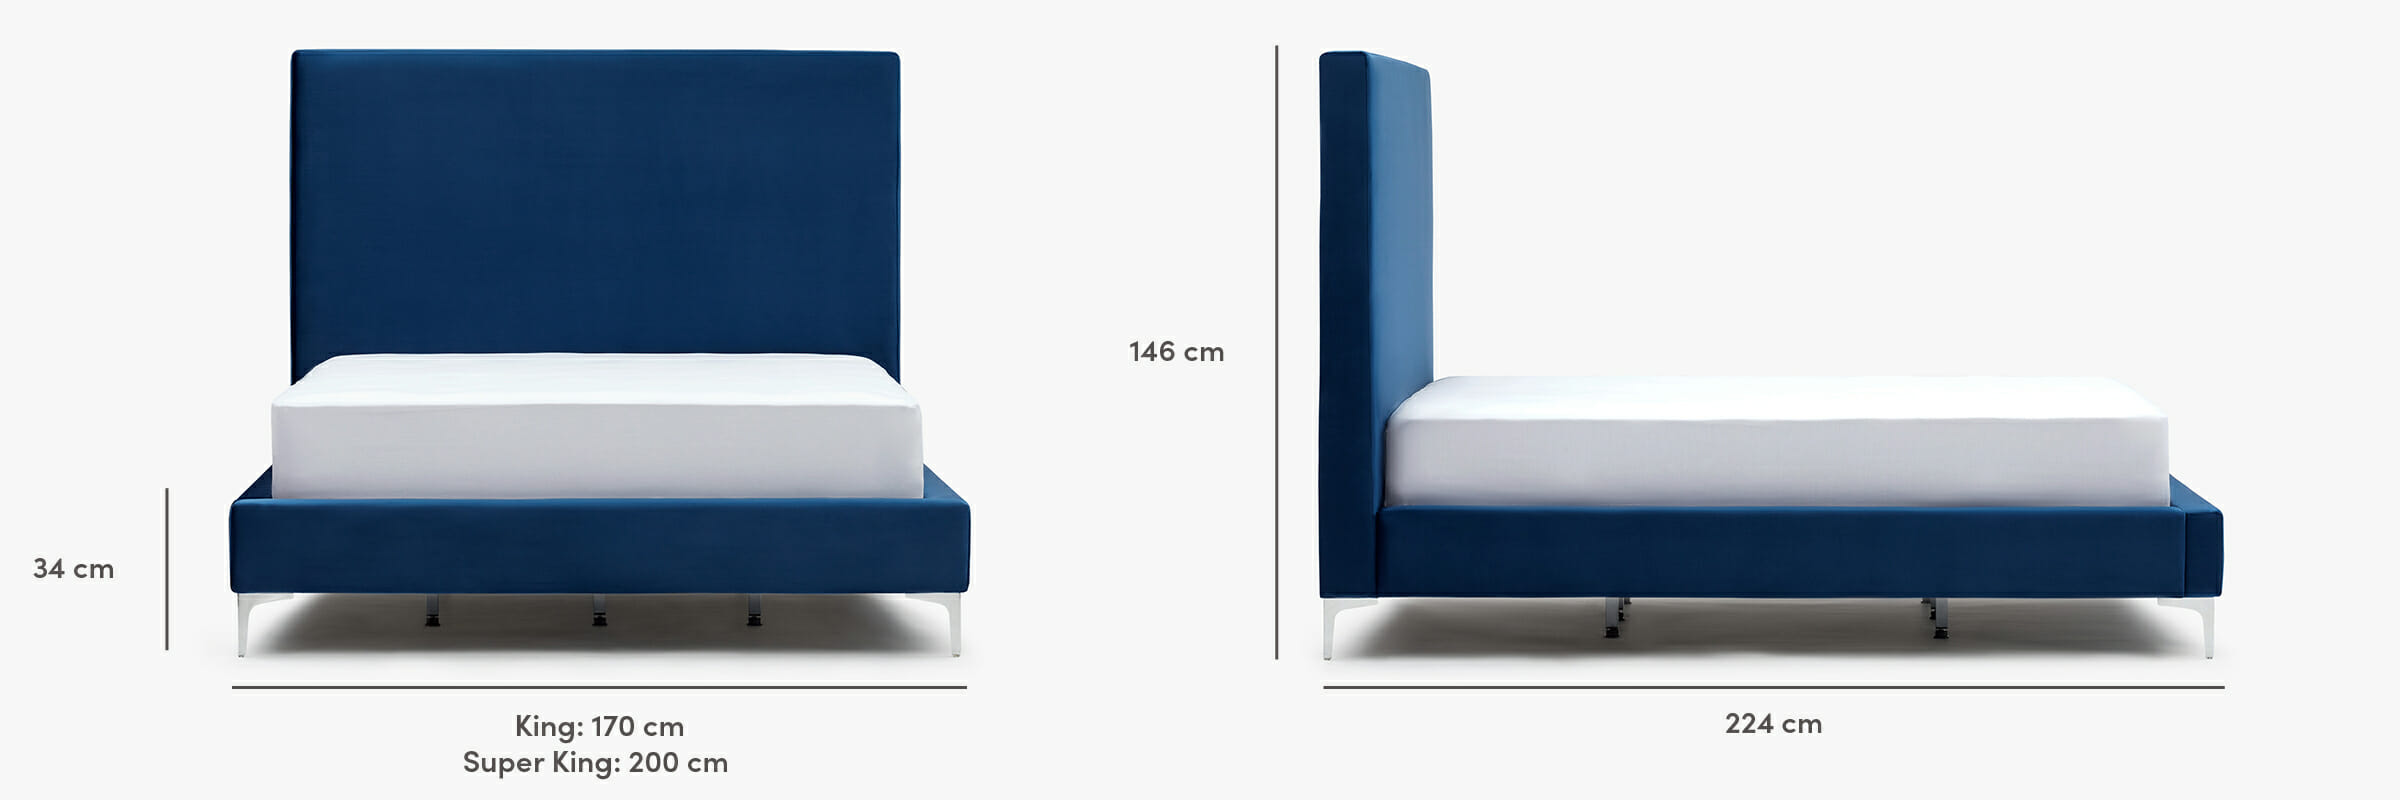 The Modena bed dimensions